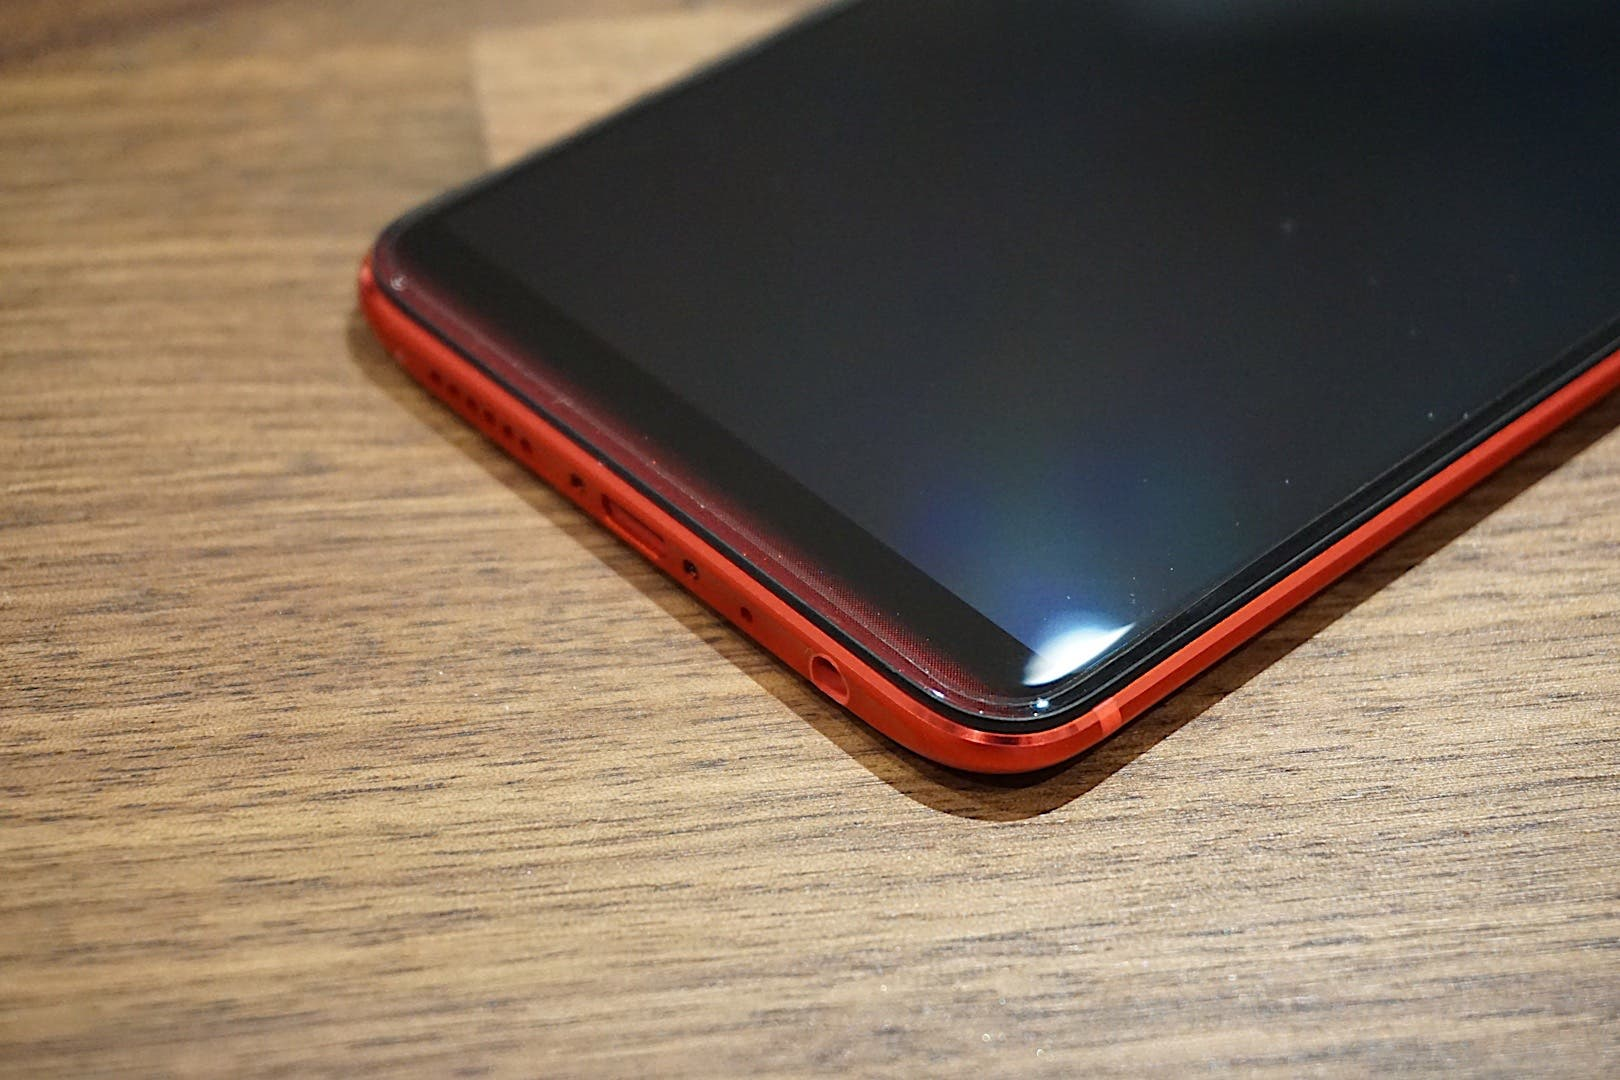 OPPO R11s unboxing